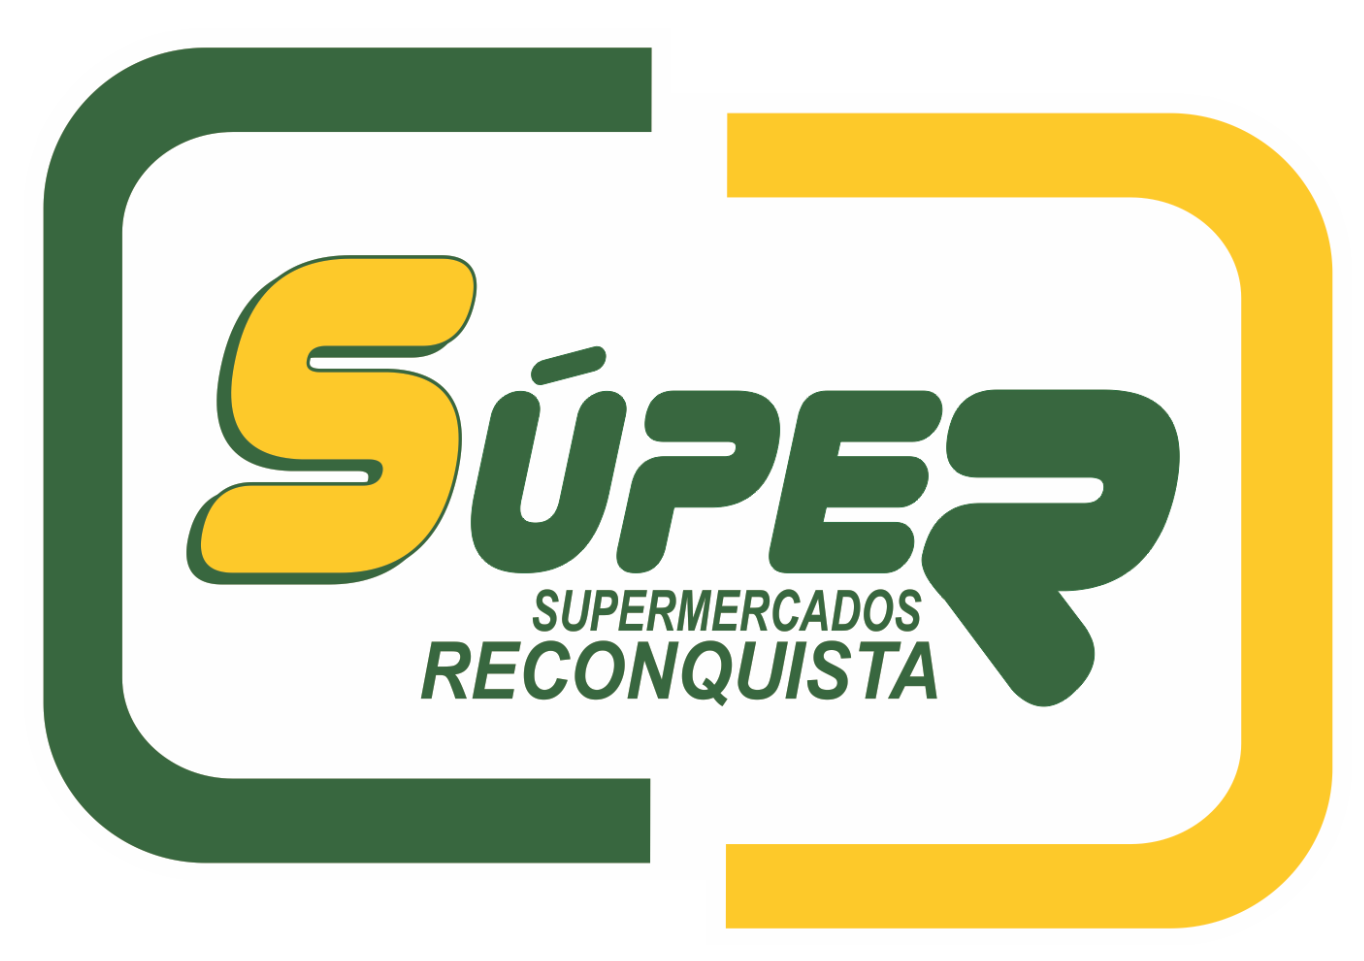 LOGO SUPER_edited